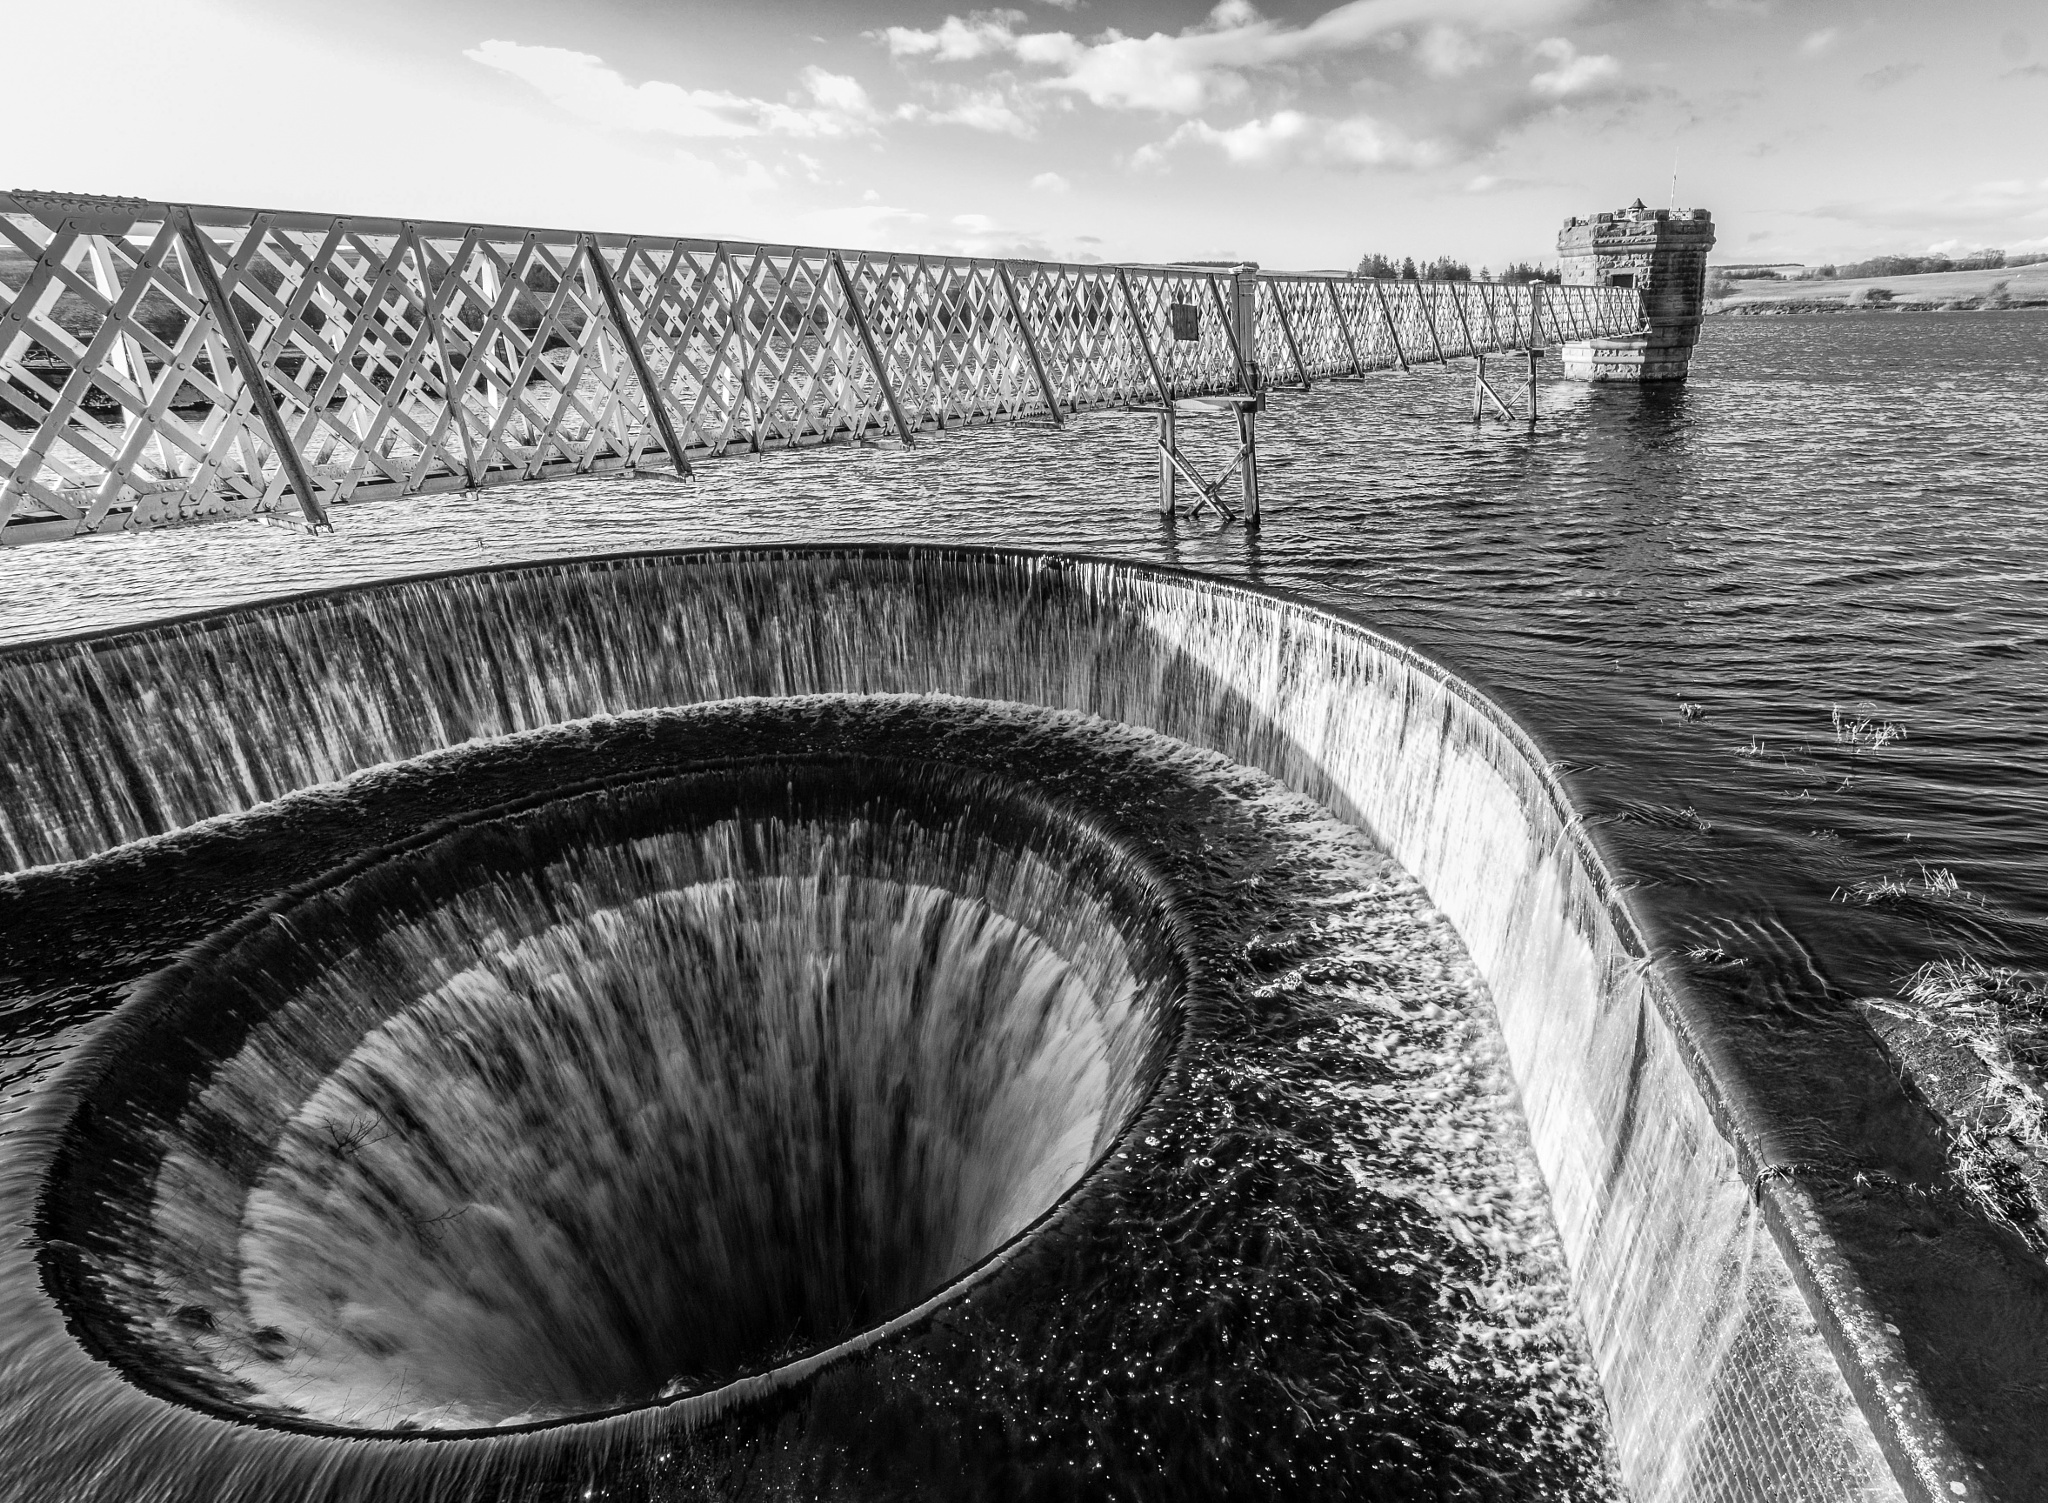 Fontburn Reservoir Water Tower by Mole59